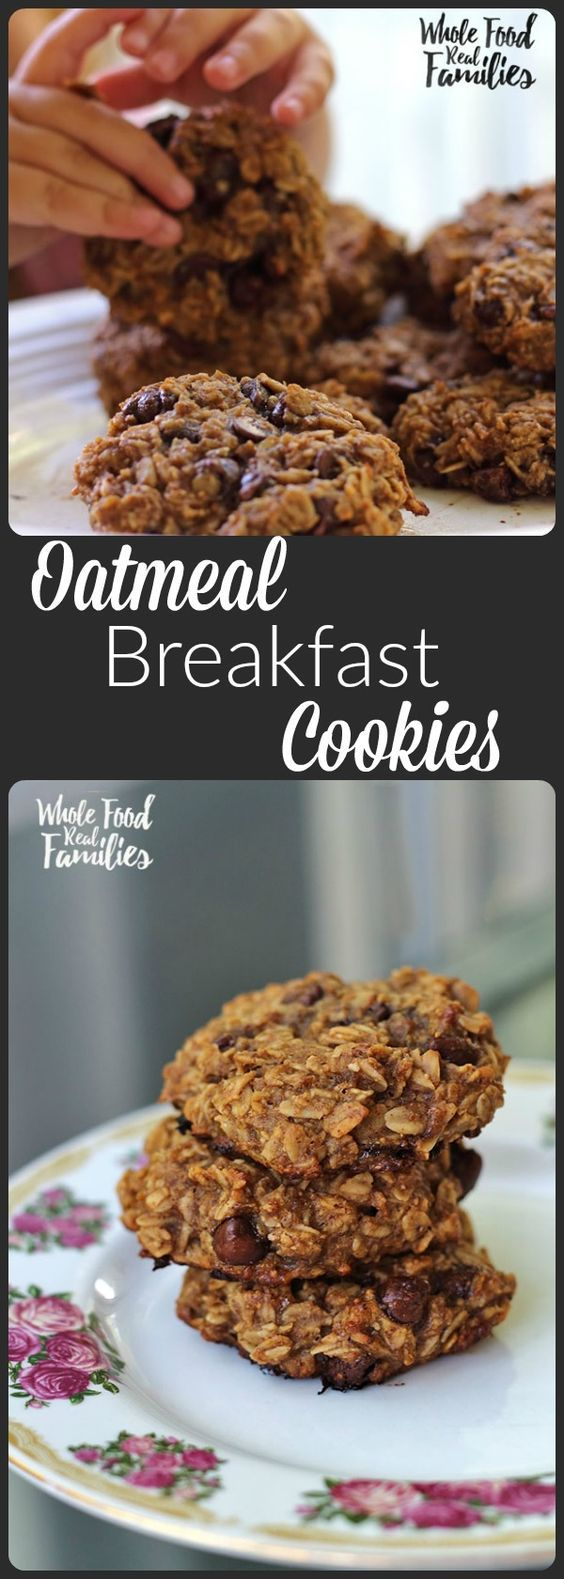 Healthy Oatmeal Breakfast Cookies 3 ripe bananas, mashed ½ cup peanut or almond butter ¼ cup honey ½ tsp salt 2¼ cups old-fashioned rolled oats ⅓ cup chocolate chips, raisins, or dried cranberries INSTRUCTIONS Preheat oven to 350 degrees. Bake for 12-15 minutes. Enjoy!